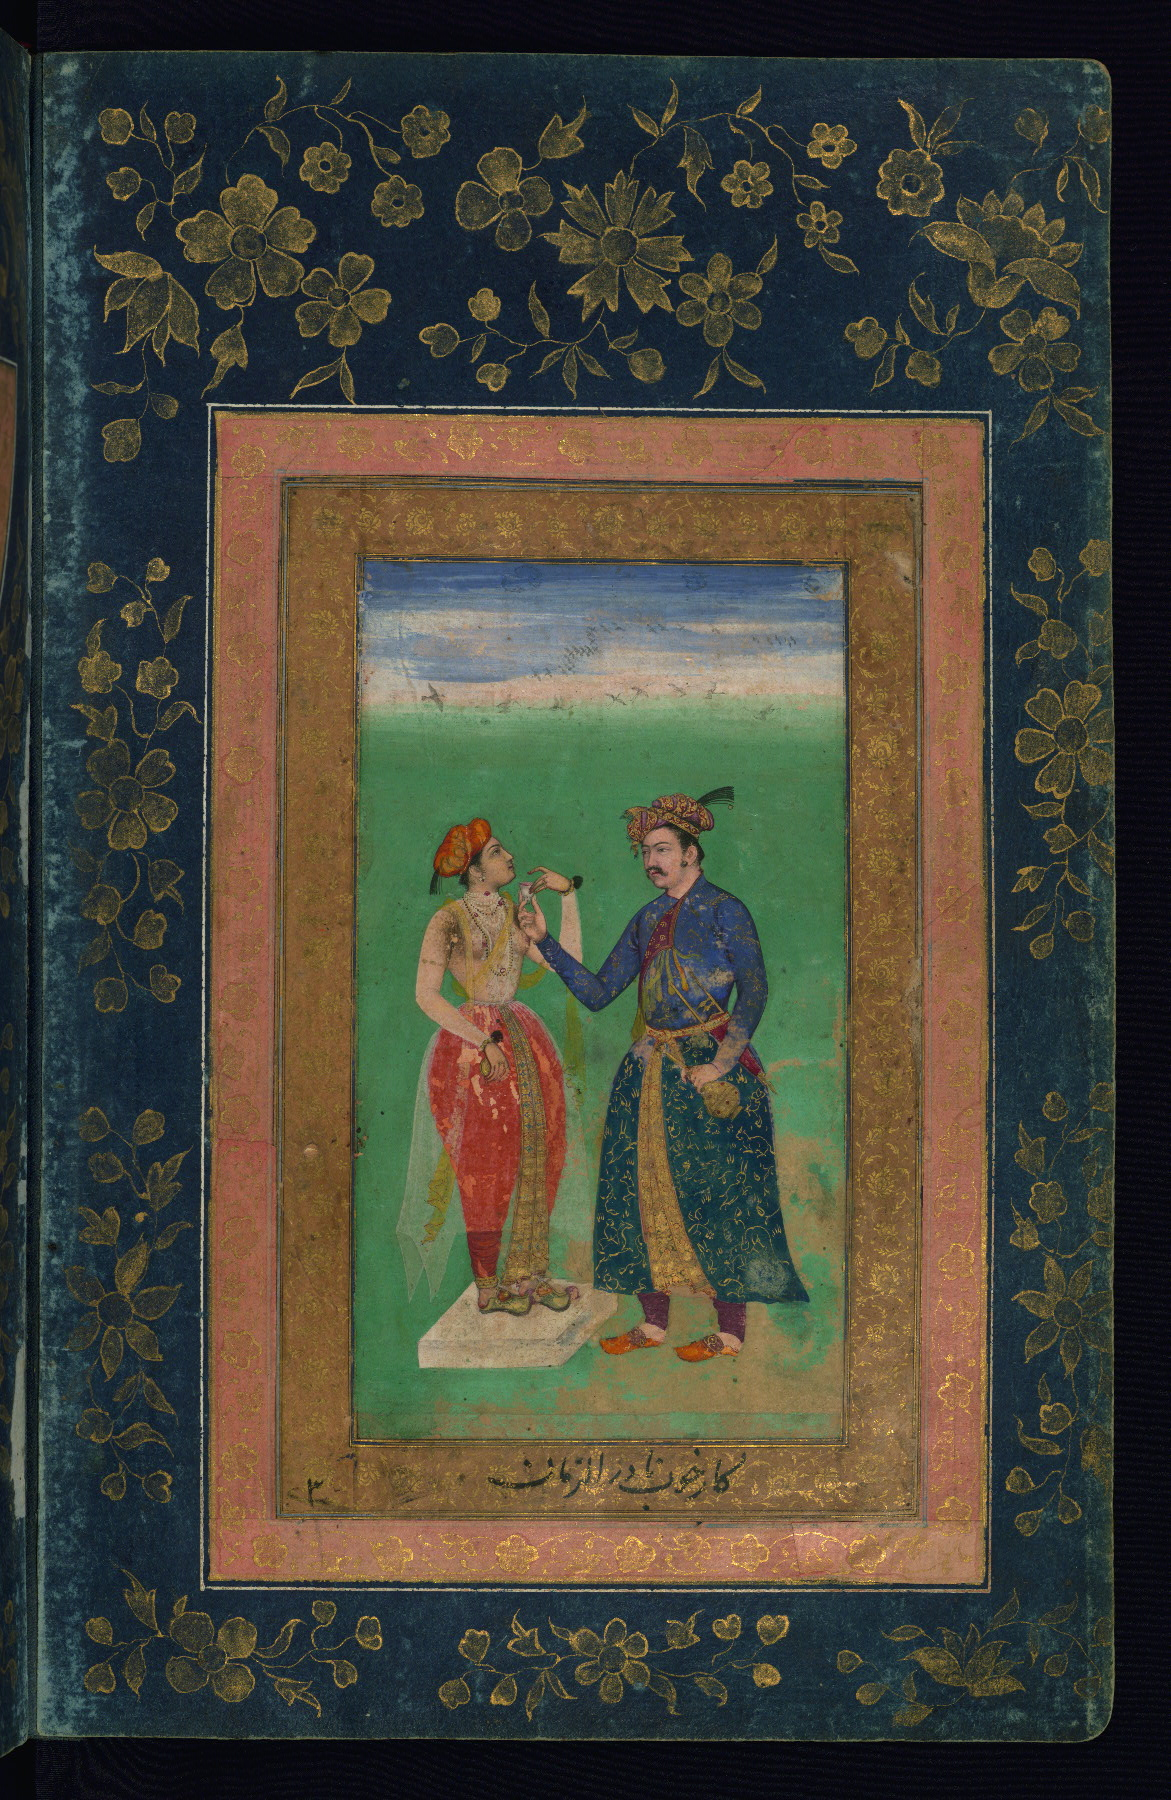 Jahangir giving a cup of wine to a young woman | Wikimedia Commons